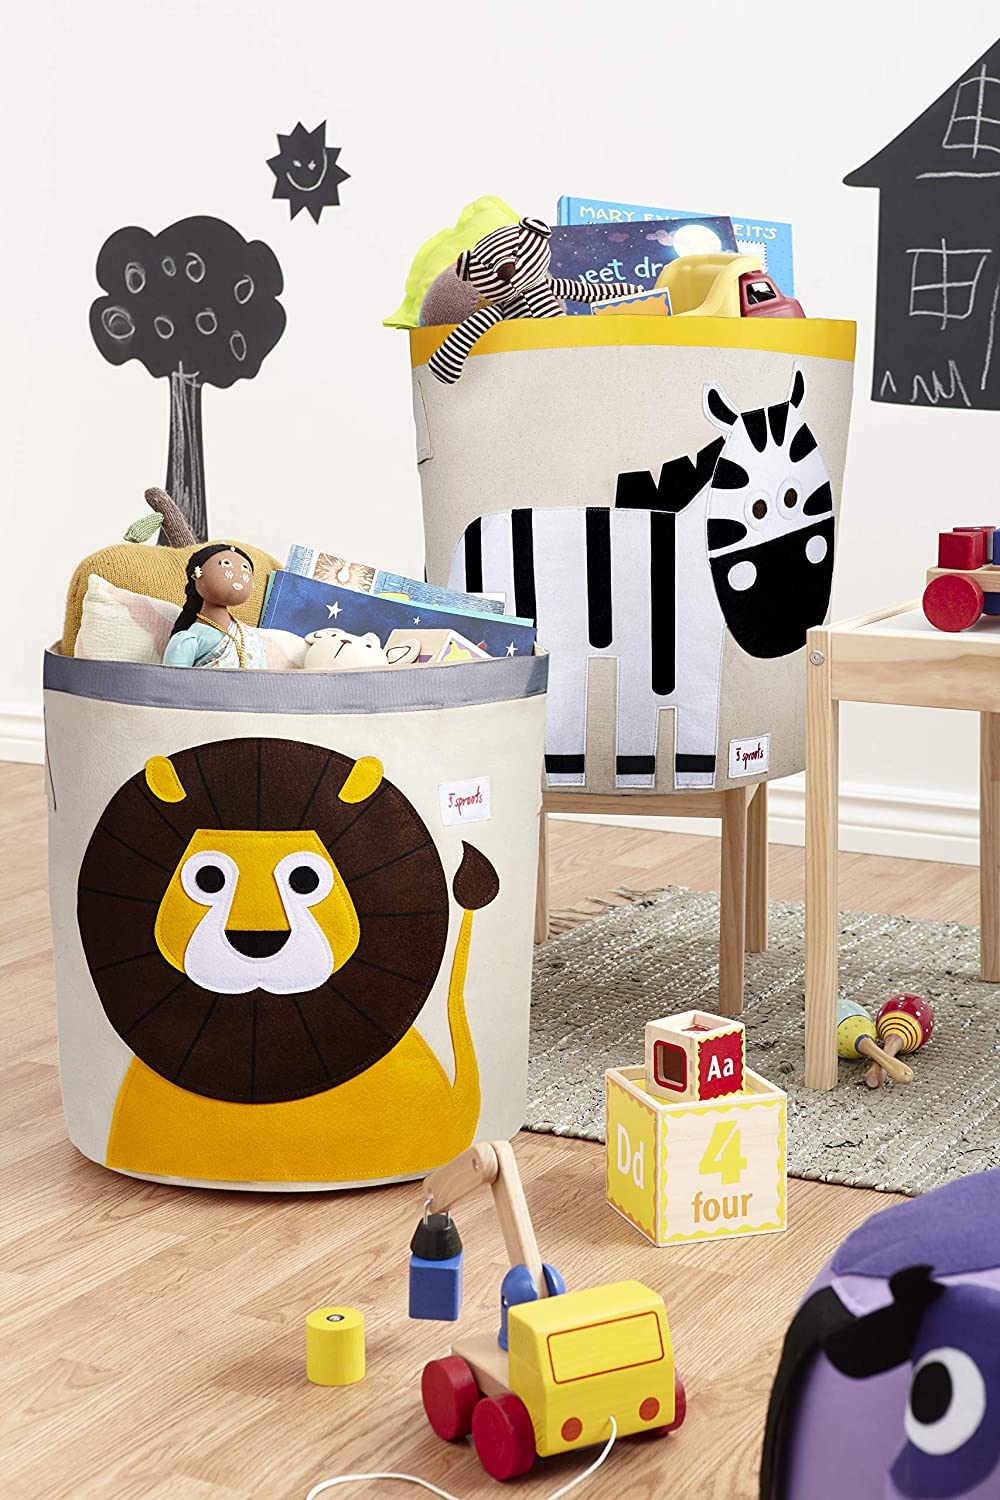 3 Sprouts Canvas Storage Bins - Laundry and Toy Basket for Baby and Kids, Safari Set